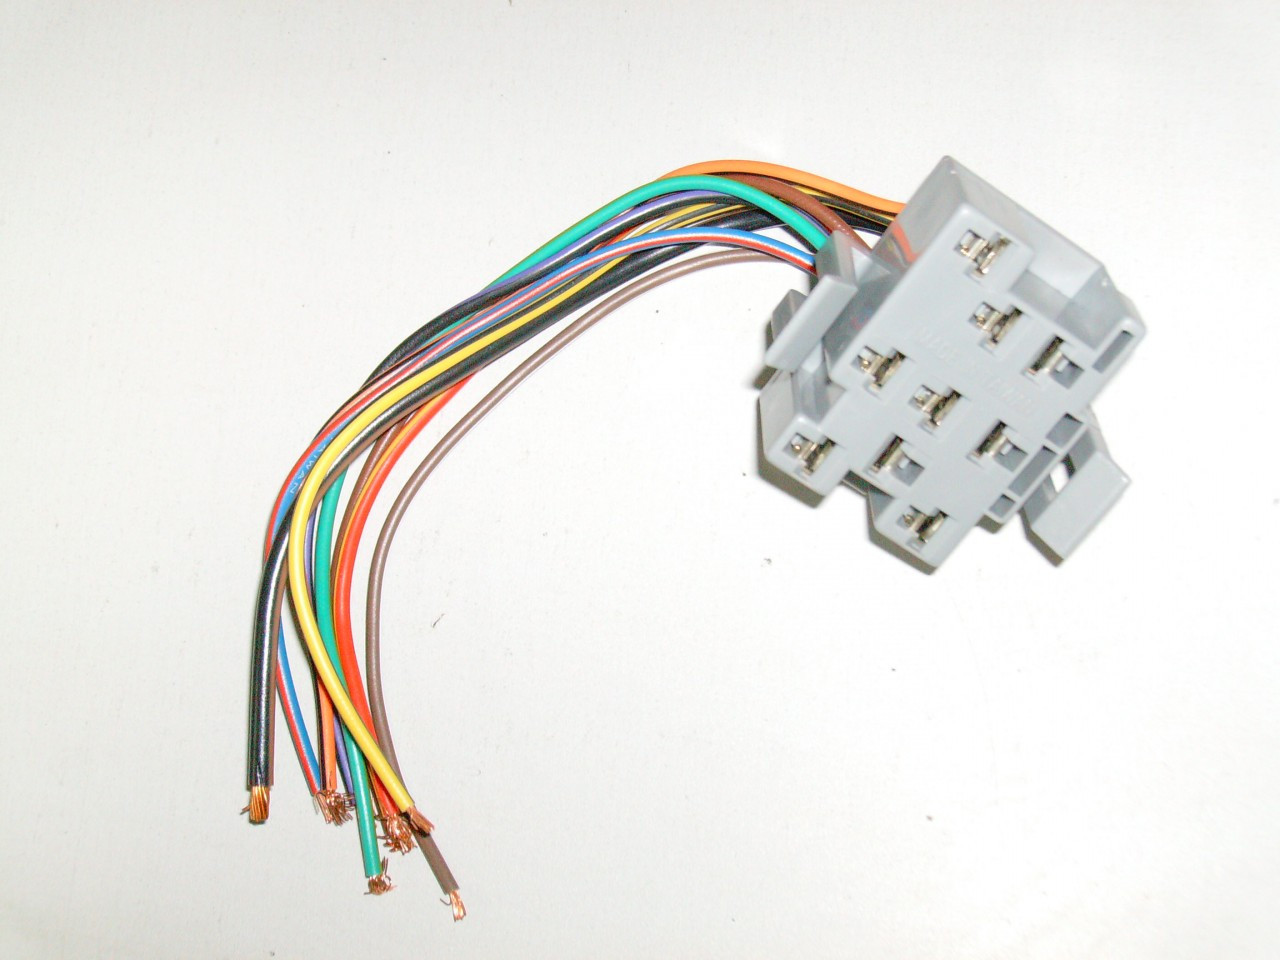 small resolution of  mustang headlight switch plug wire harness socket gt lx cobra price 25 98 image 1